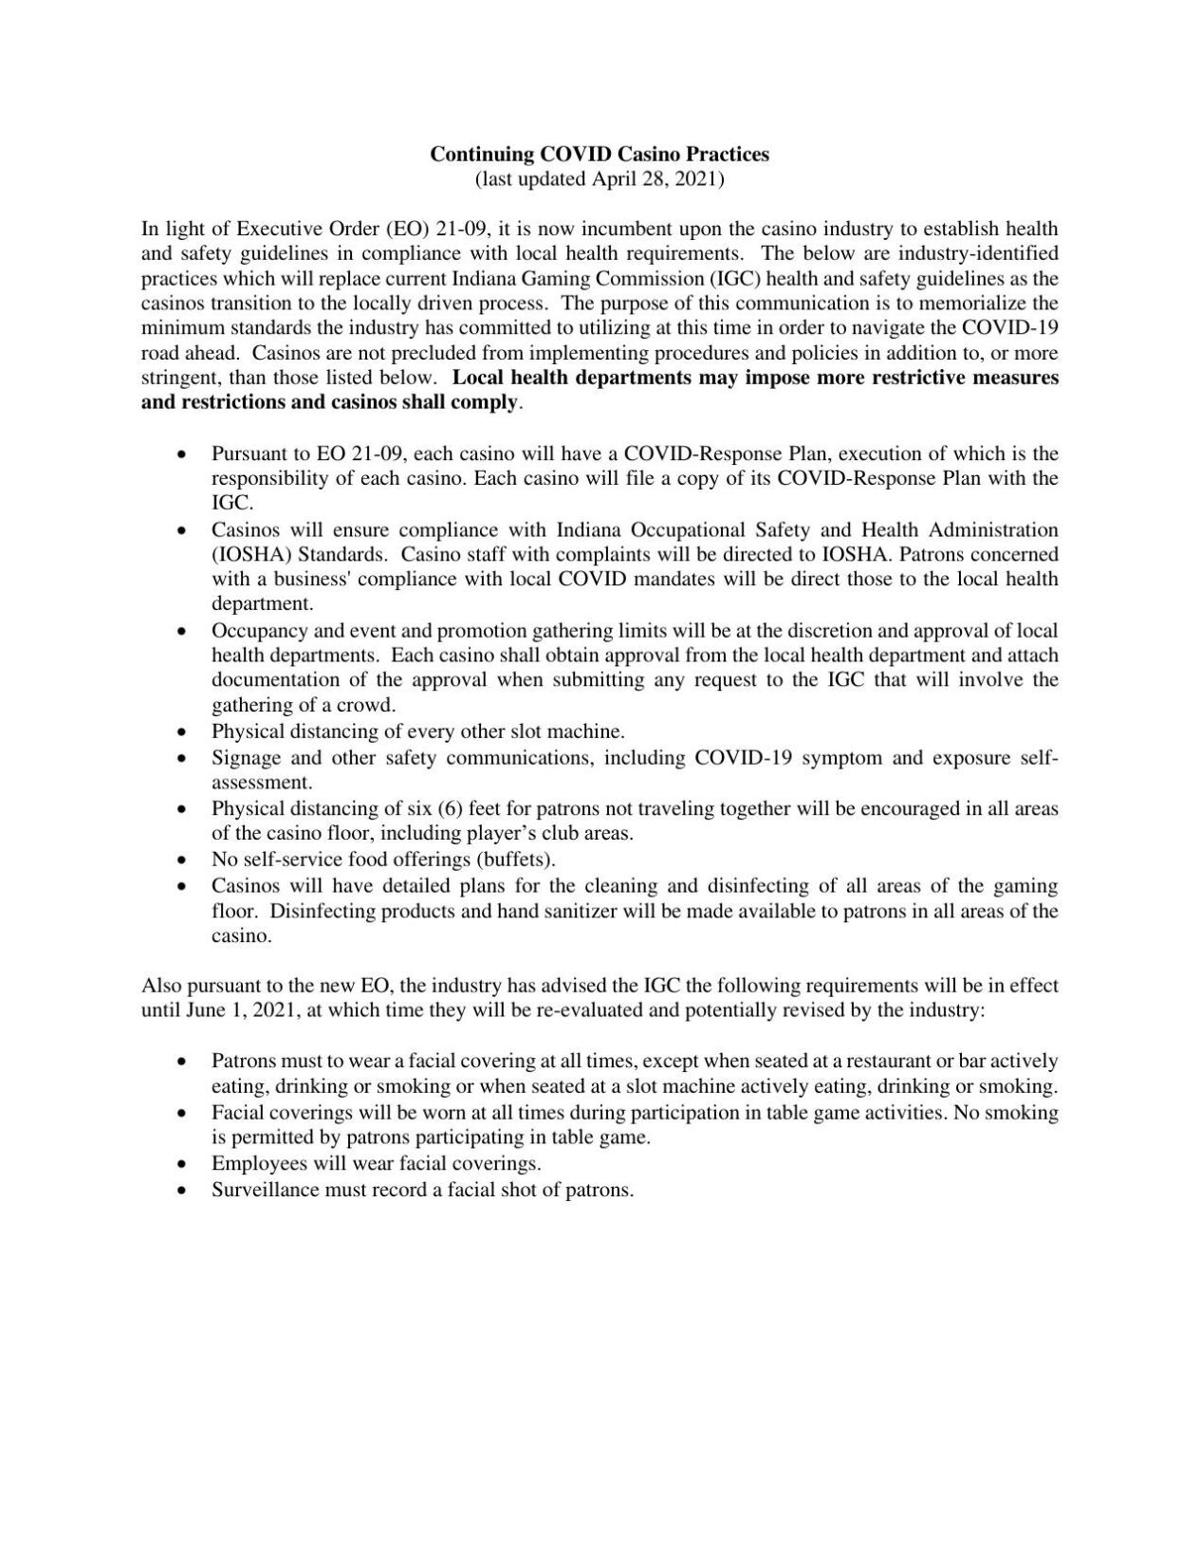 Indiana Gaming Commission notice on casino COVID-19 prevention protocols